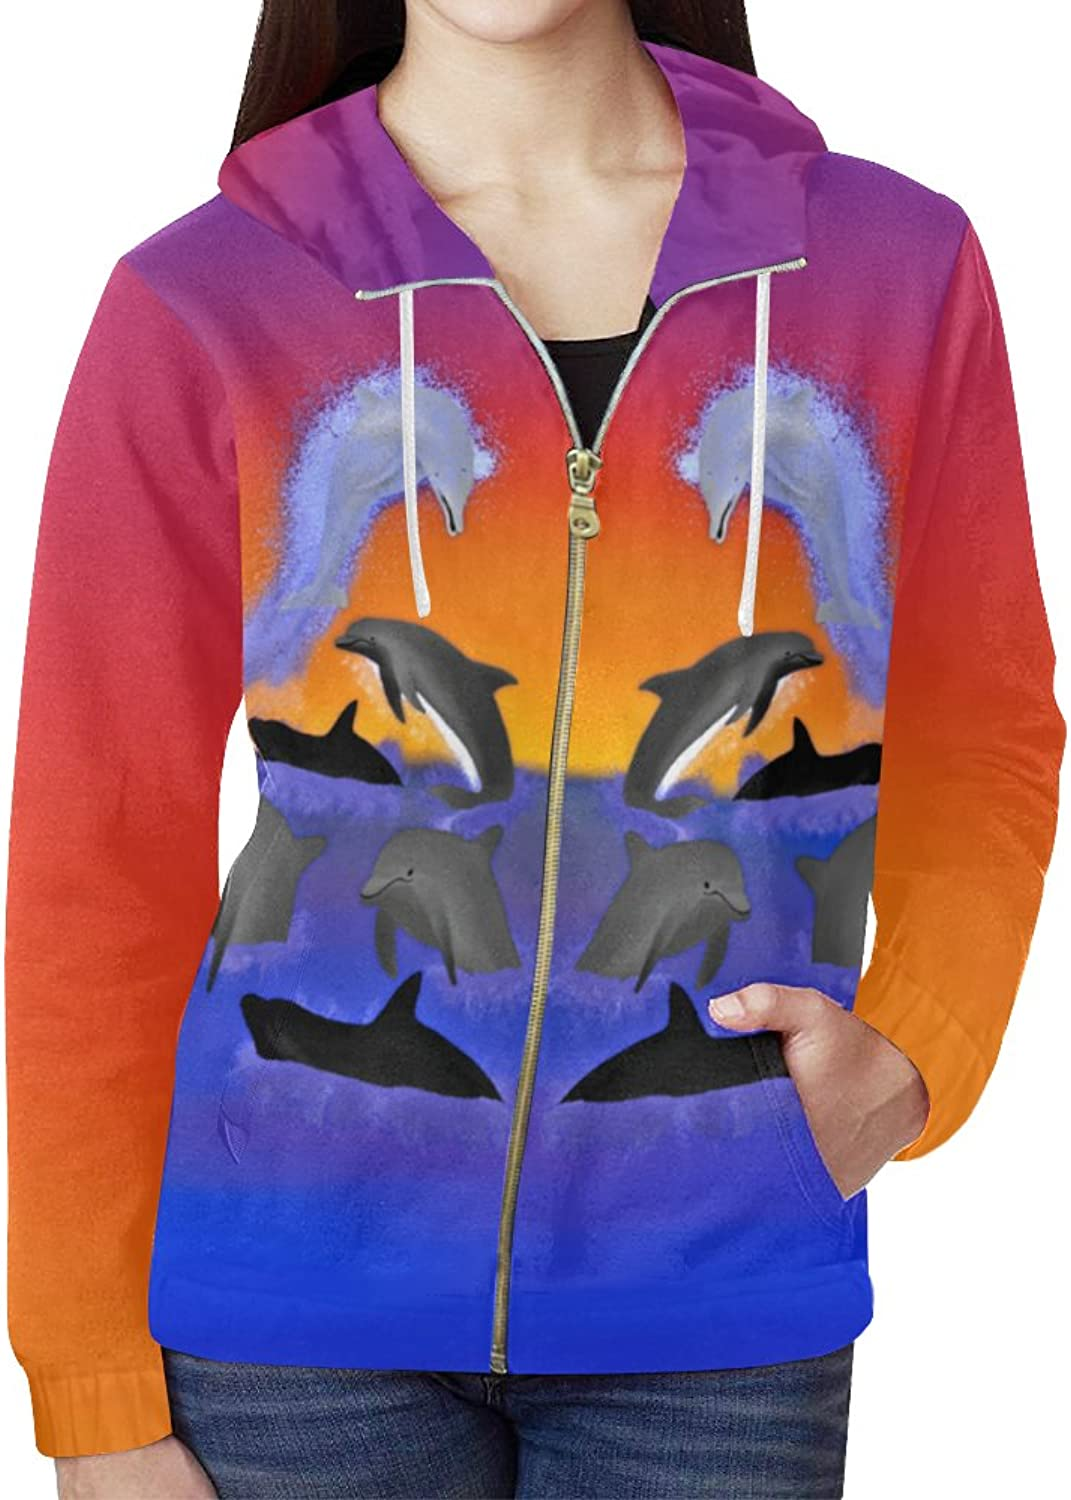 Nicole Kiefer Design A Dolphins Oean Women's All Over Print Full Zip Hoodie